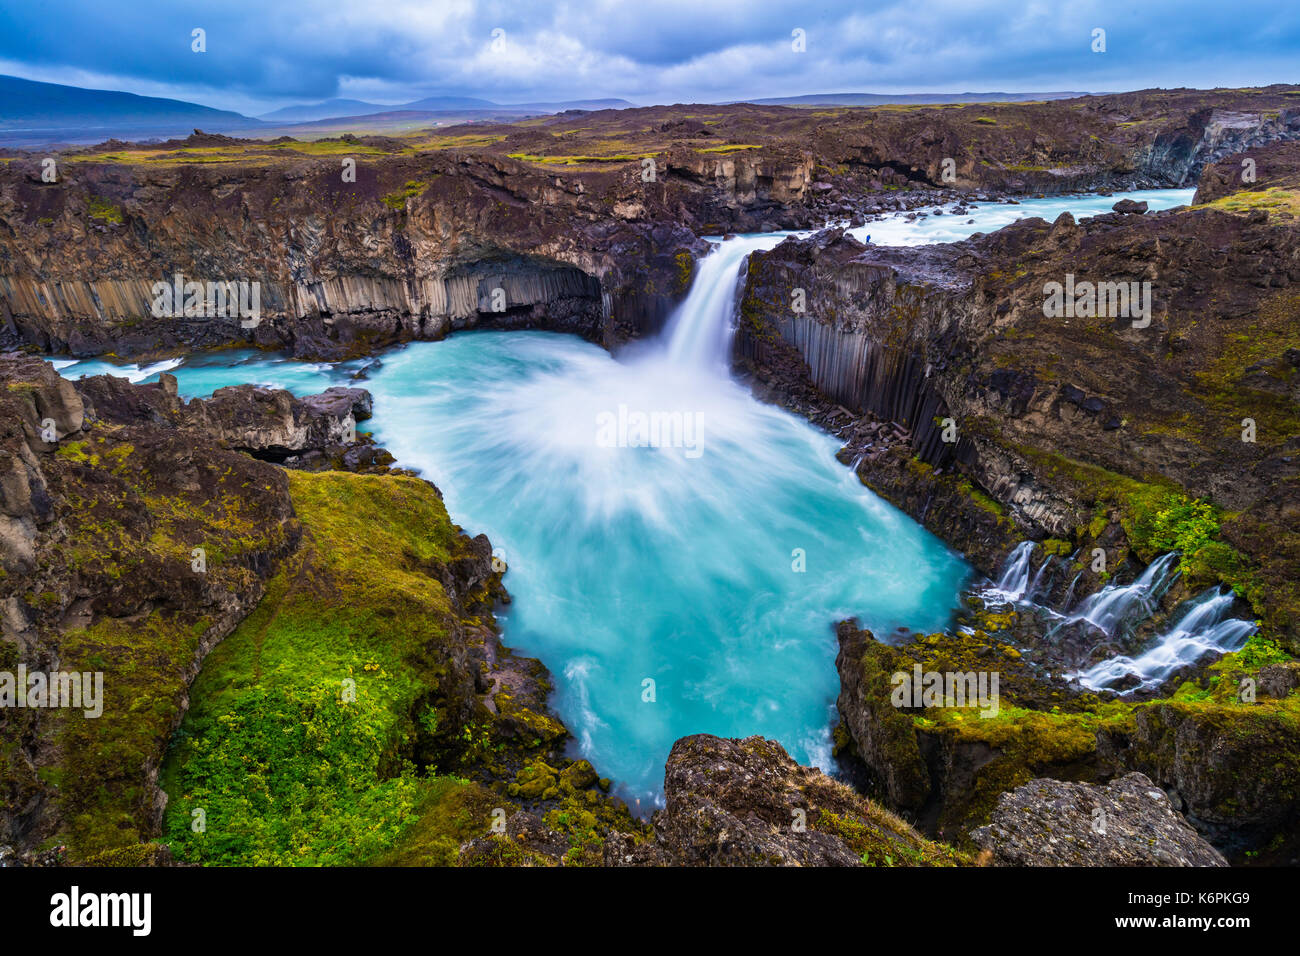 The Aldeyjarfoss waterfall is situated in the north of Iceland at the northern part of the Sprengisandur Highland - Stock Image